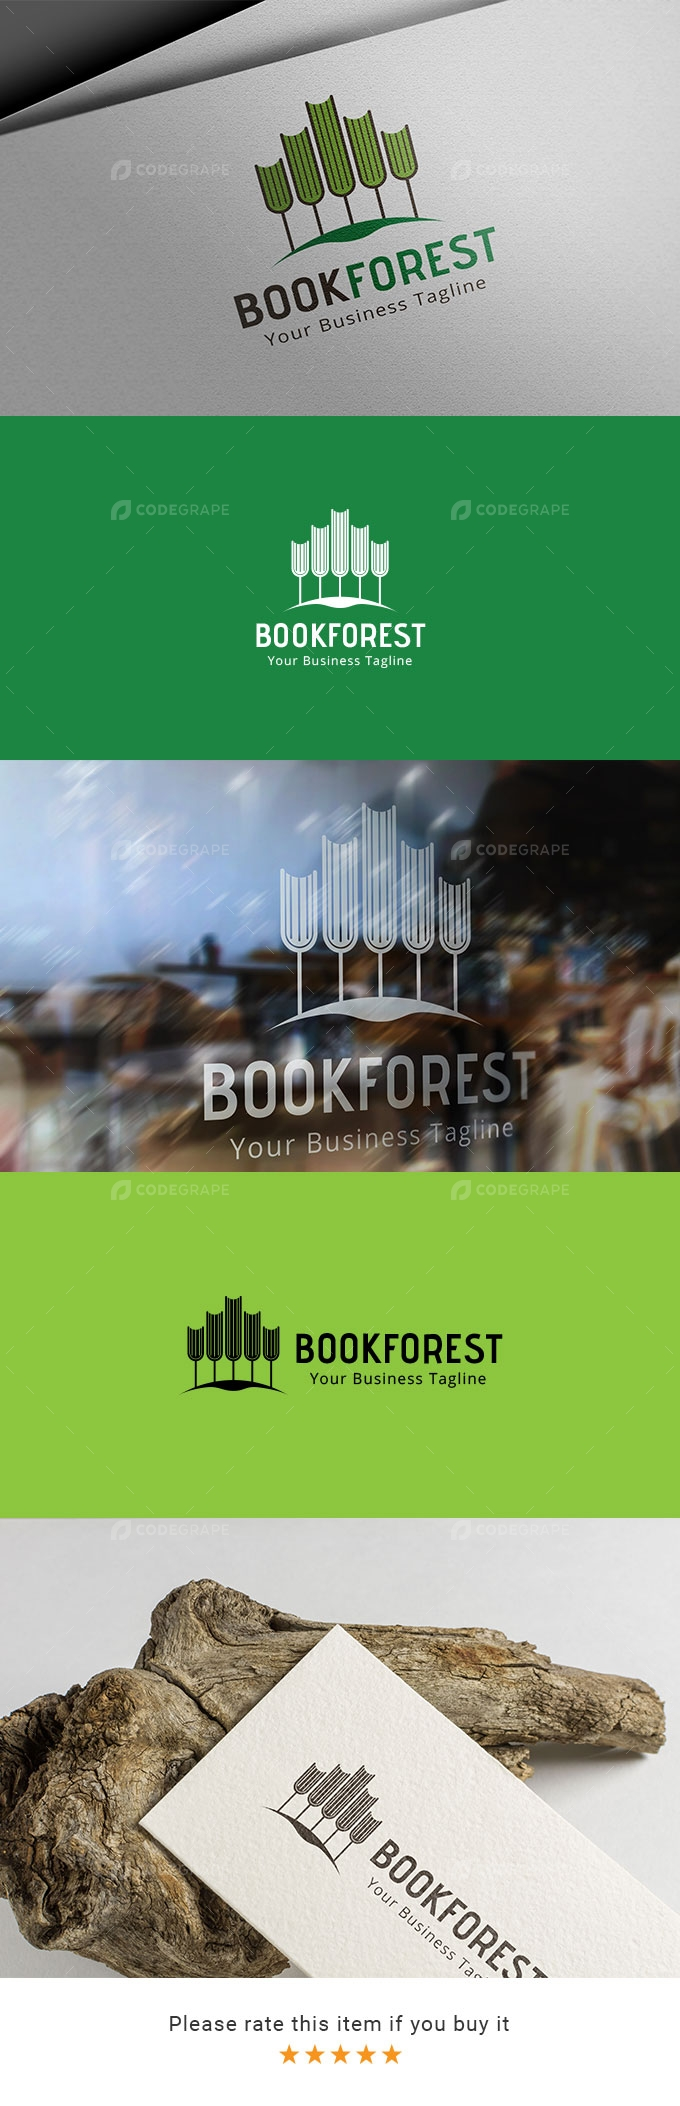 Book Forest - Store Logo